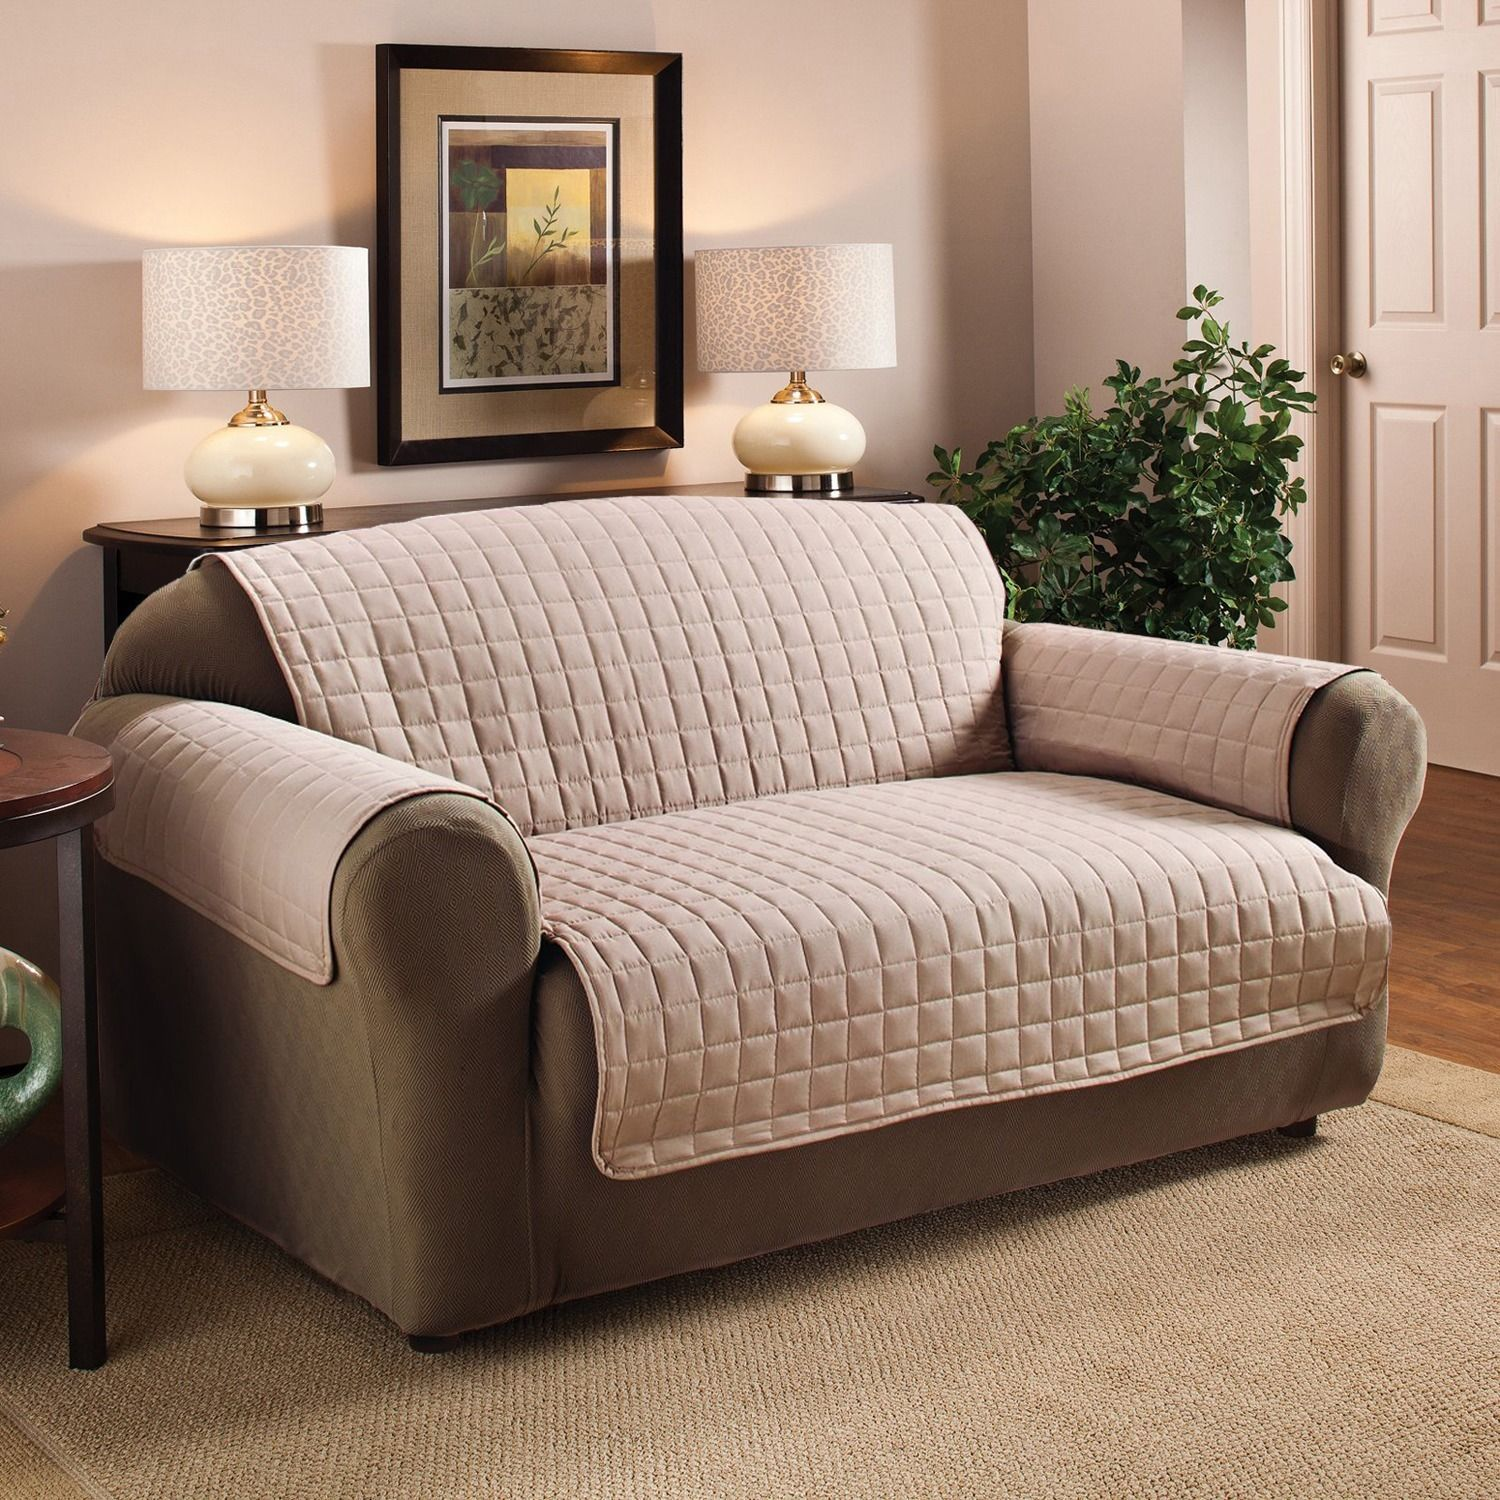 Online Ping Bedding Furniture